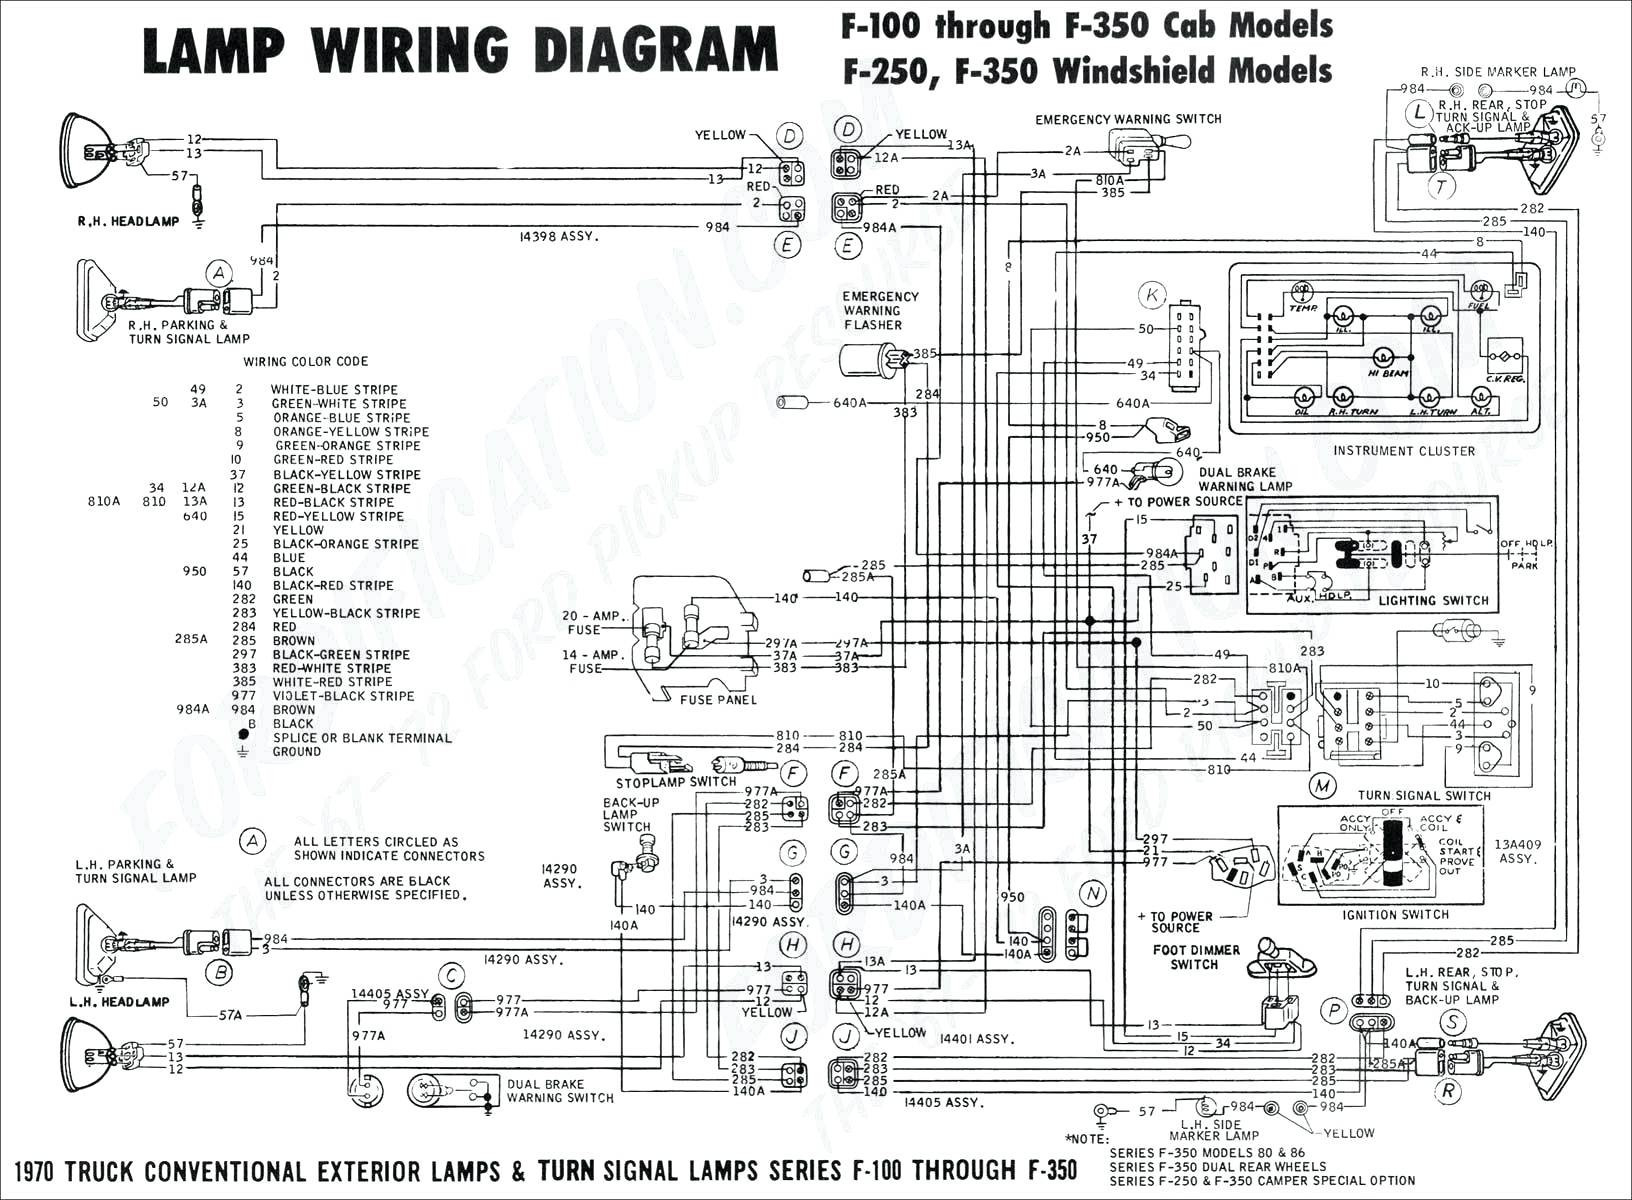 2015 silverado bcm wiring diagram diy enthusiasts wiring diagrams u2022 rh okdrywall co 2014 chevy cruze engine diagram 2014 chevy equinox engine diagram